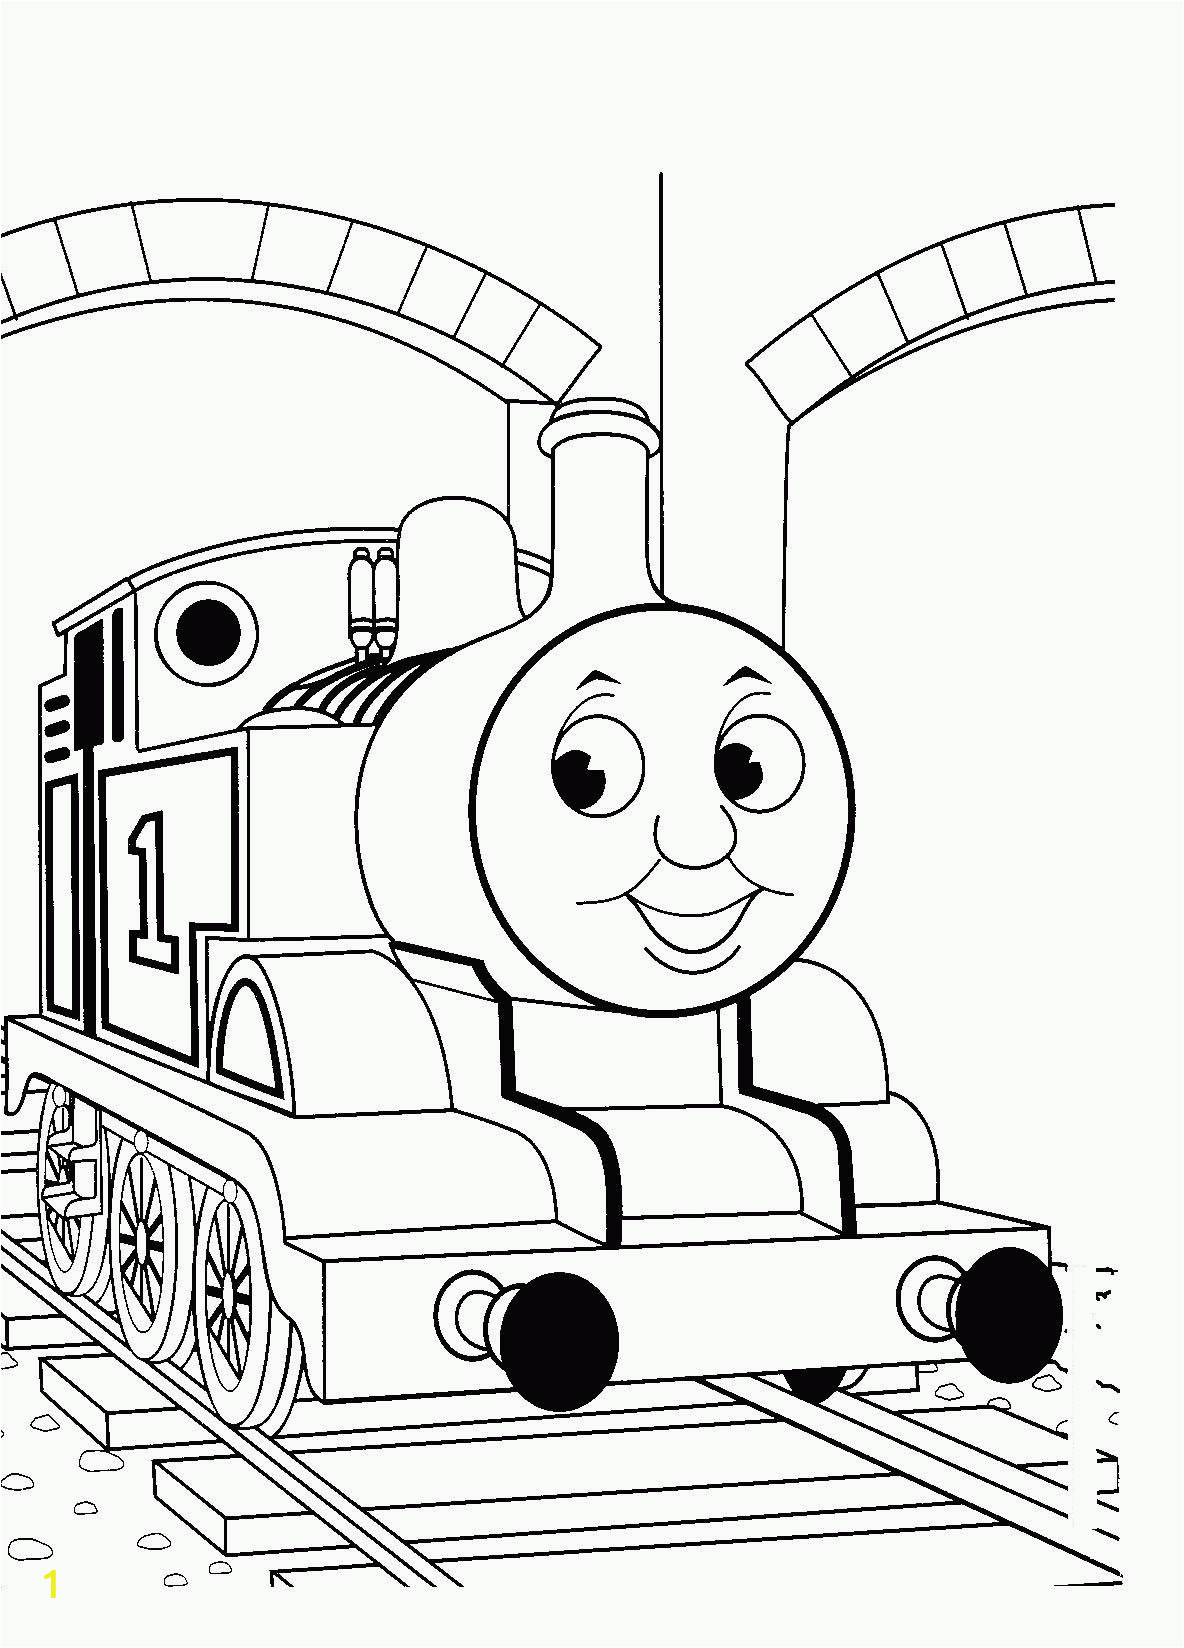 Thomas the Train Coloring Games Online Free Printable Thomas the Train Coloring Pages Download